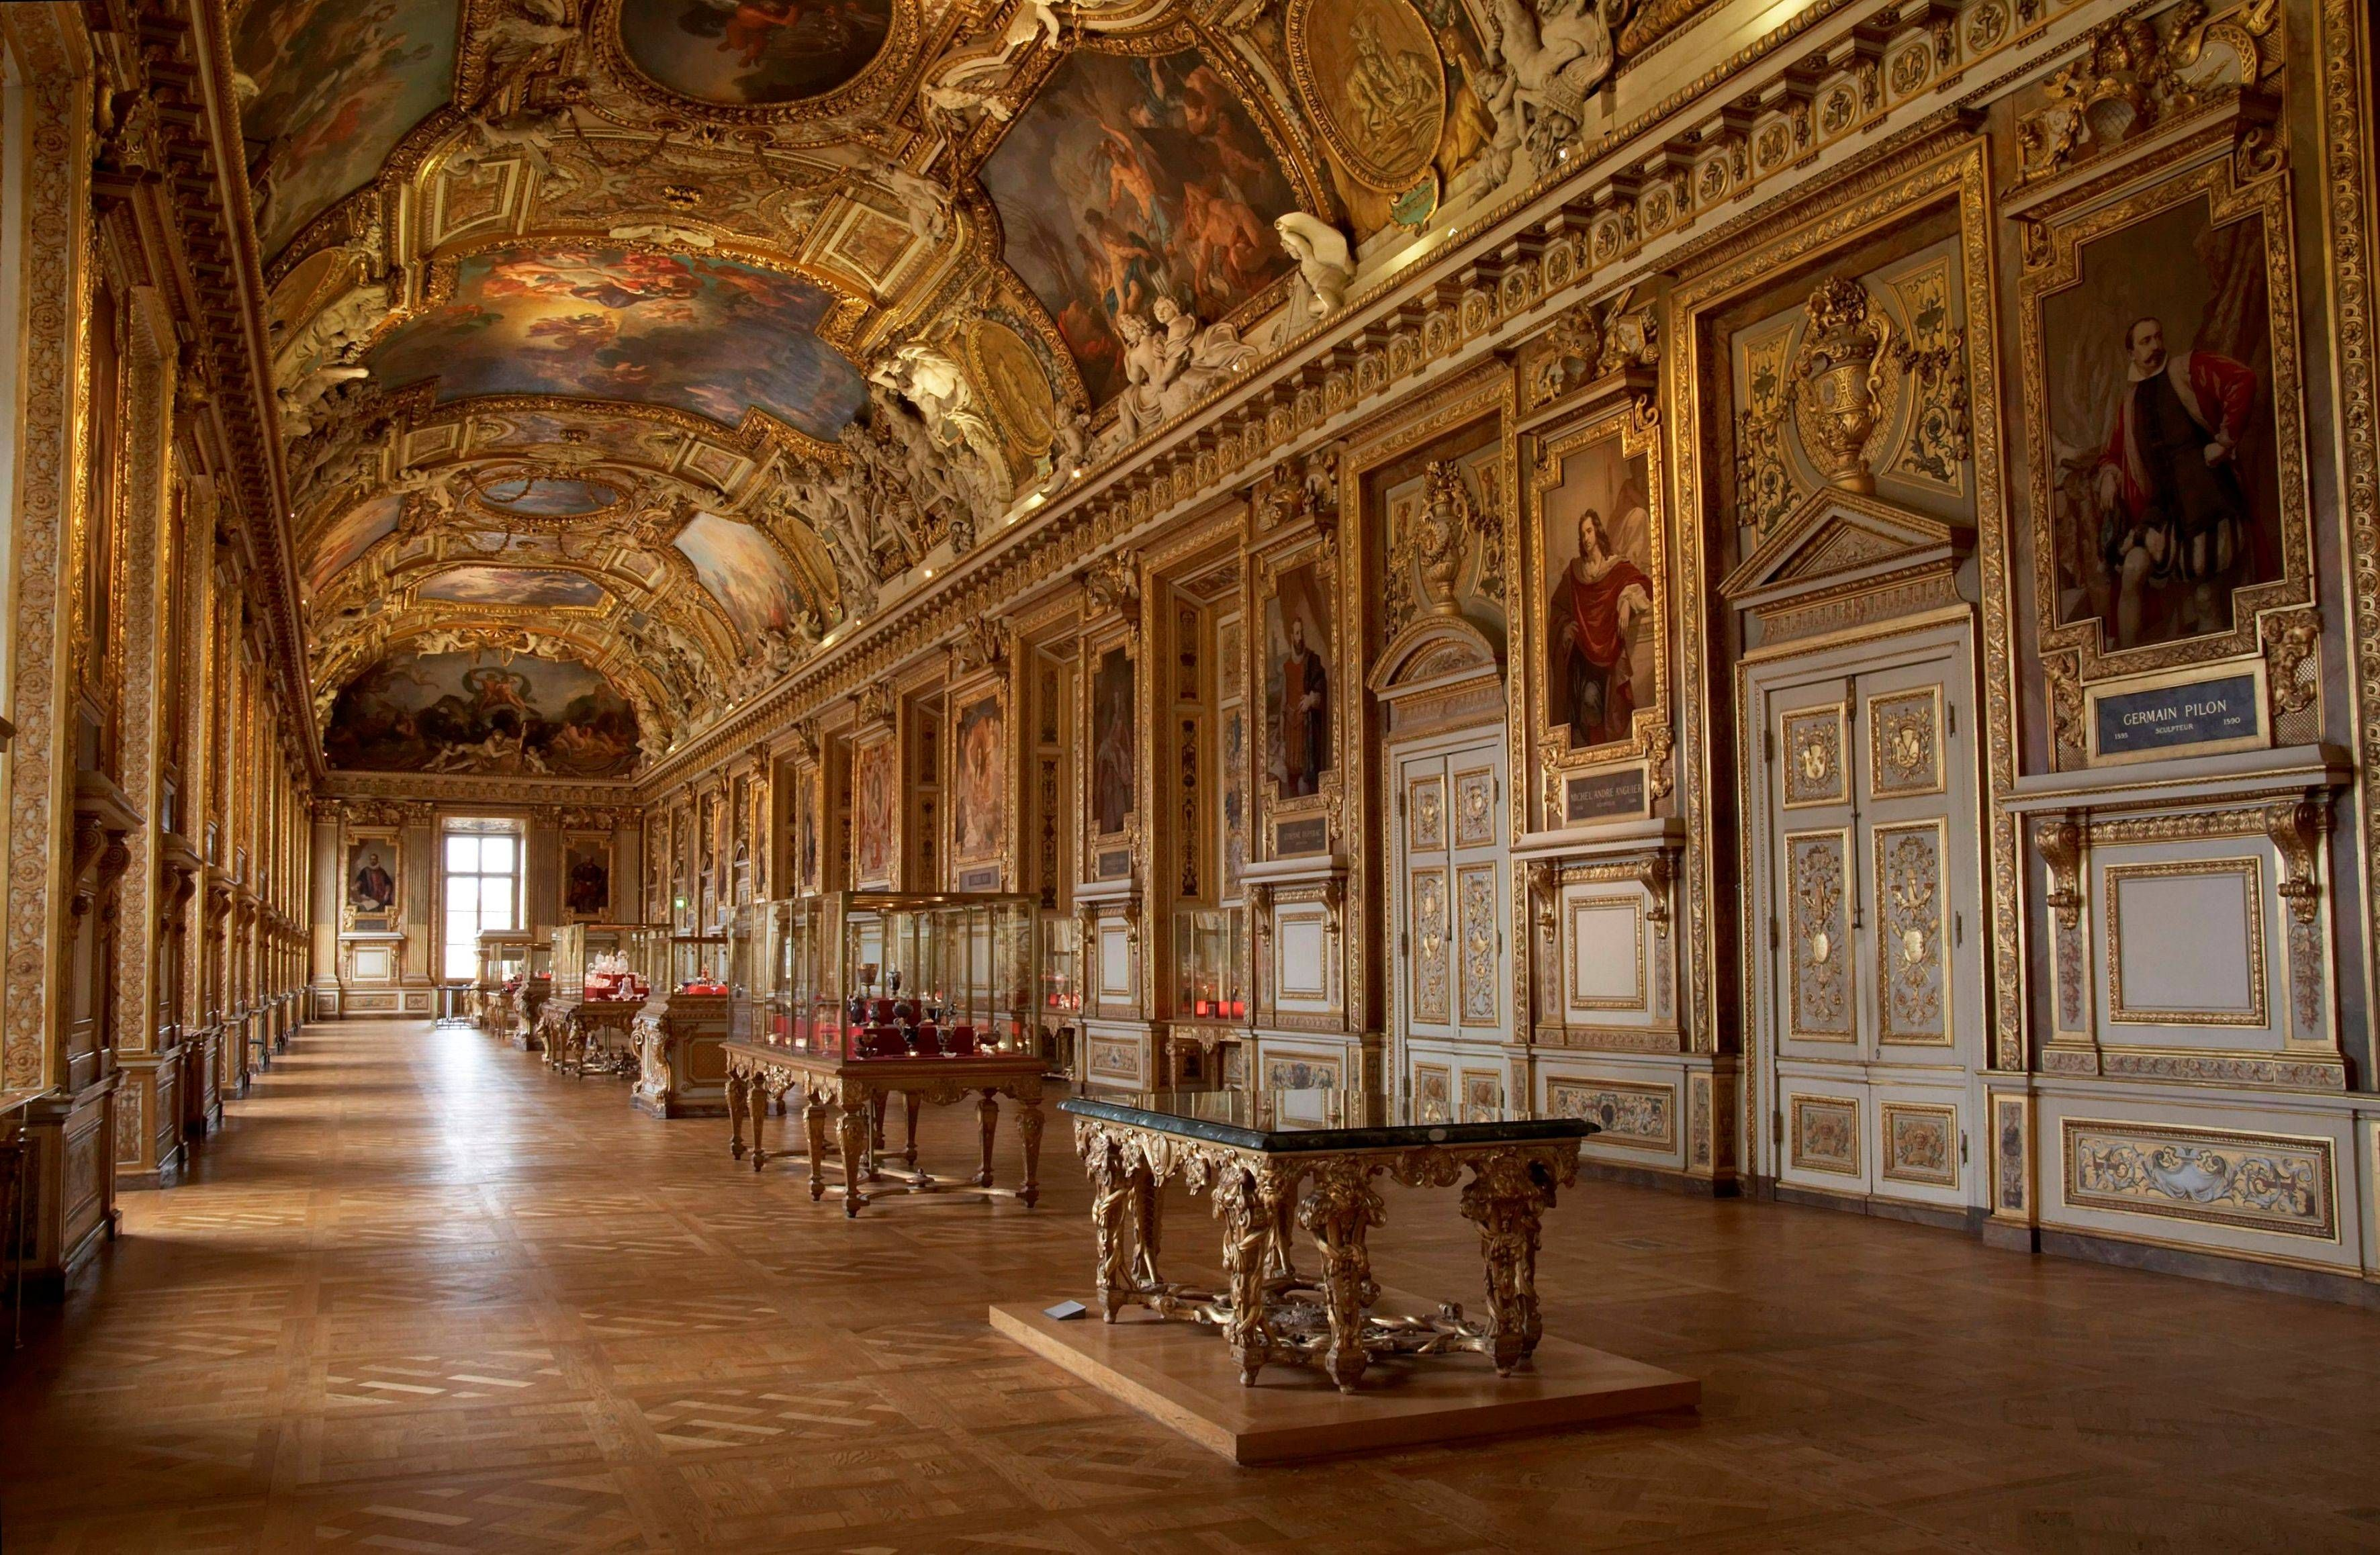 In Pictures: Breathtaking Highlights From Collections at the Louvre ...